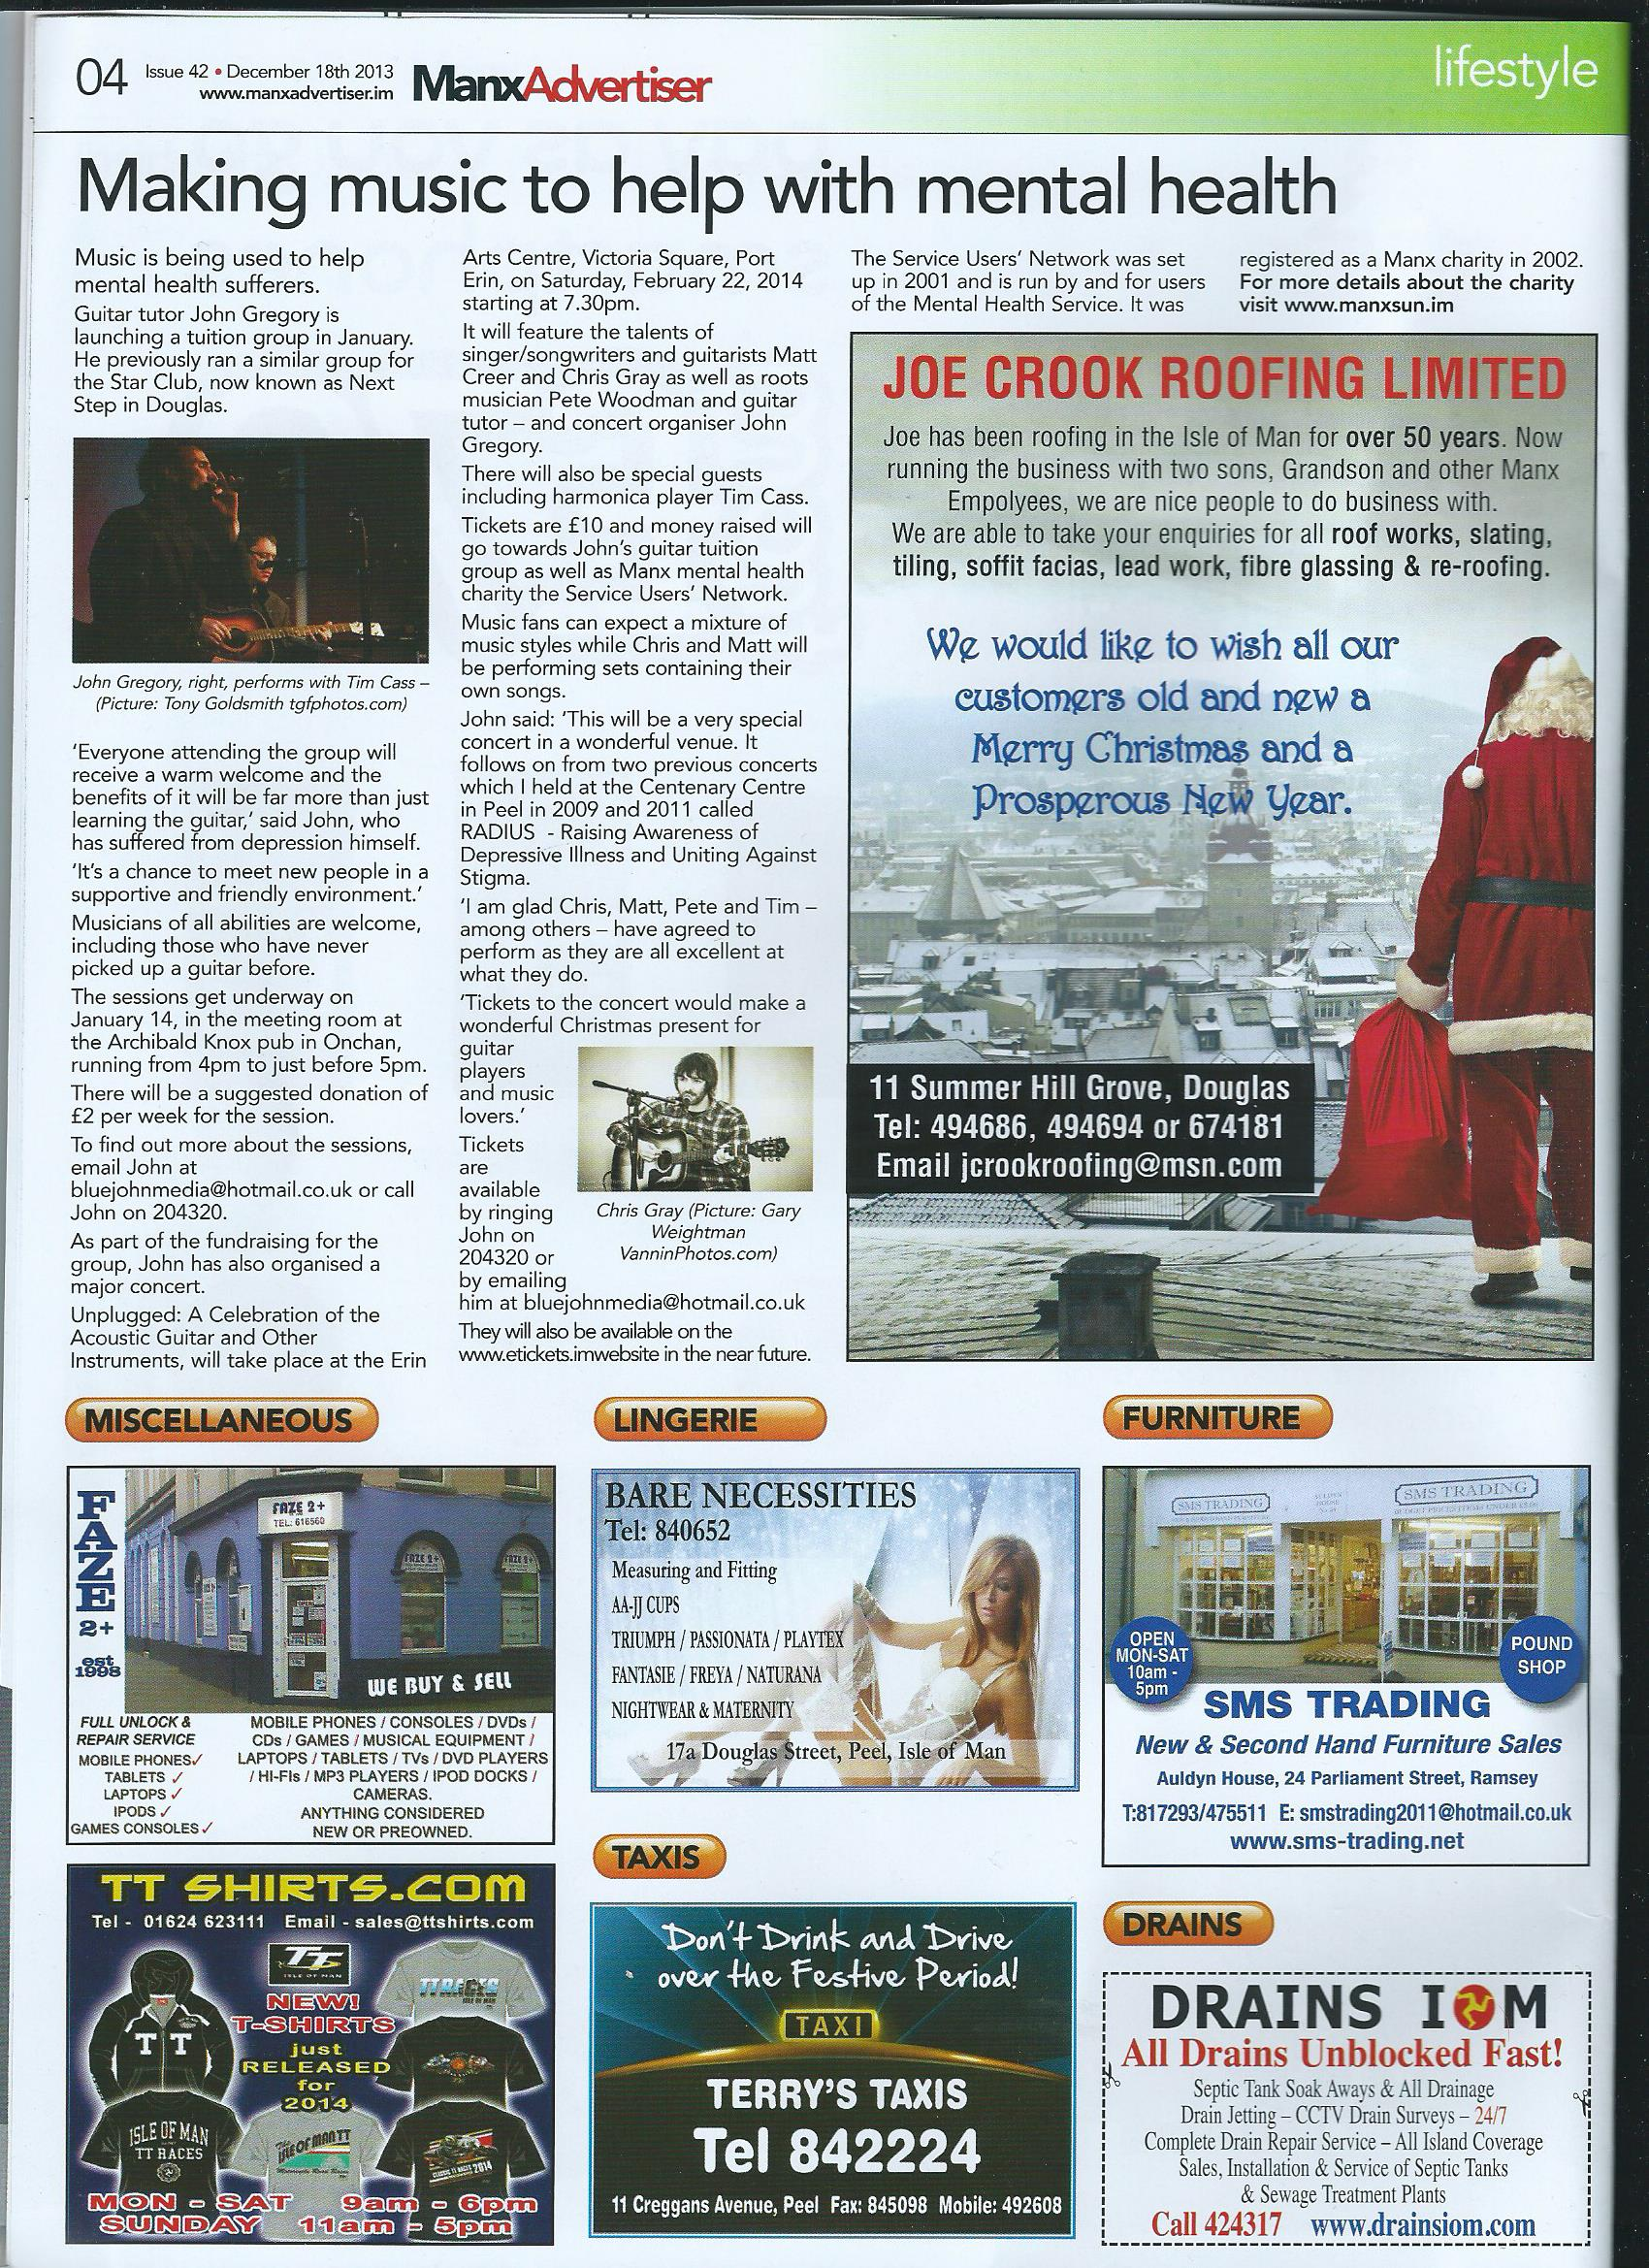 Manx Advertiser - Dec 18 2013